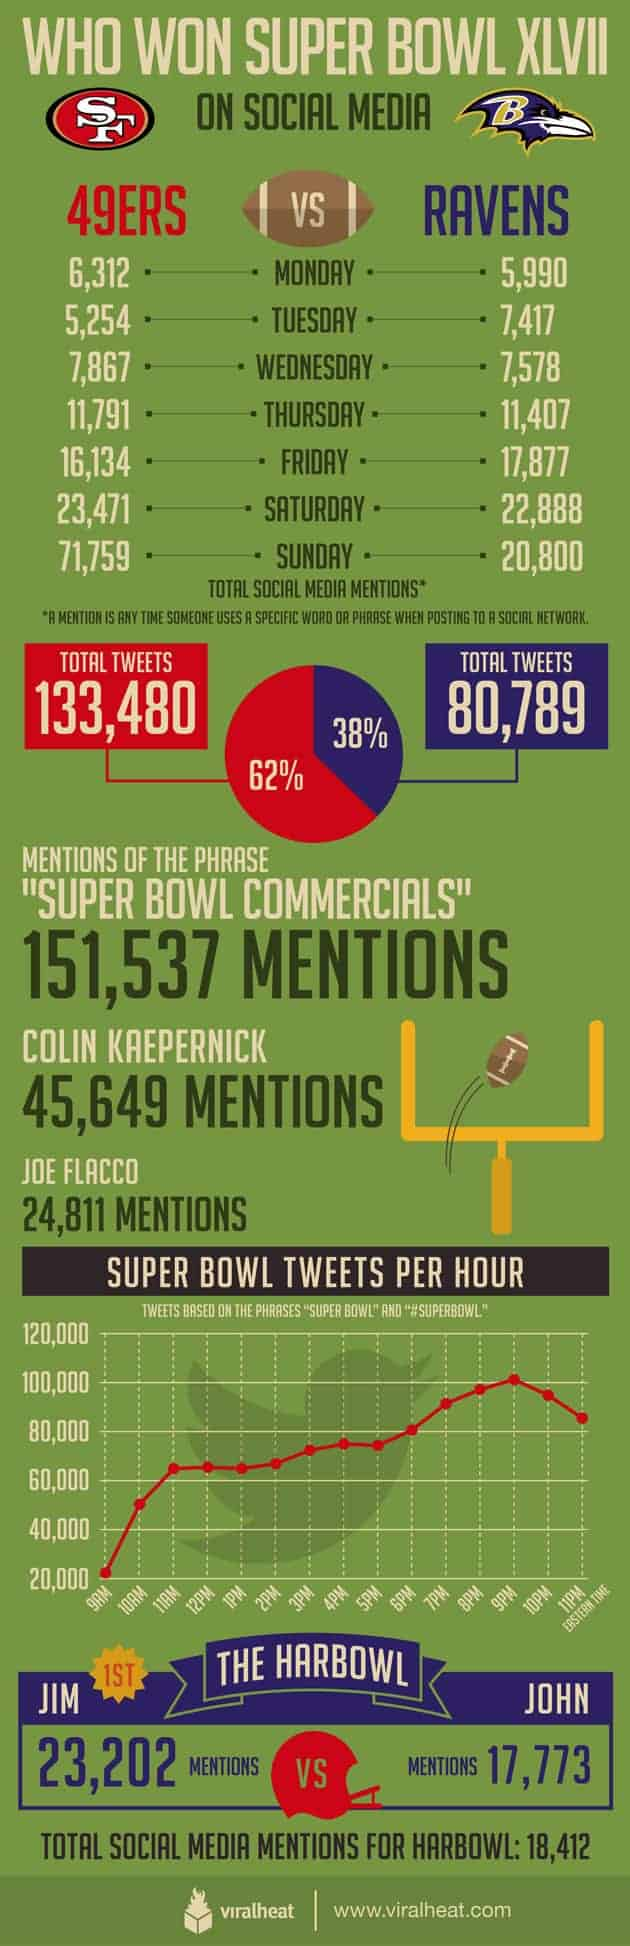 Who Won the Social Media Superbowl